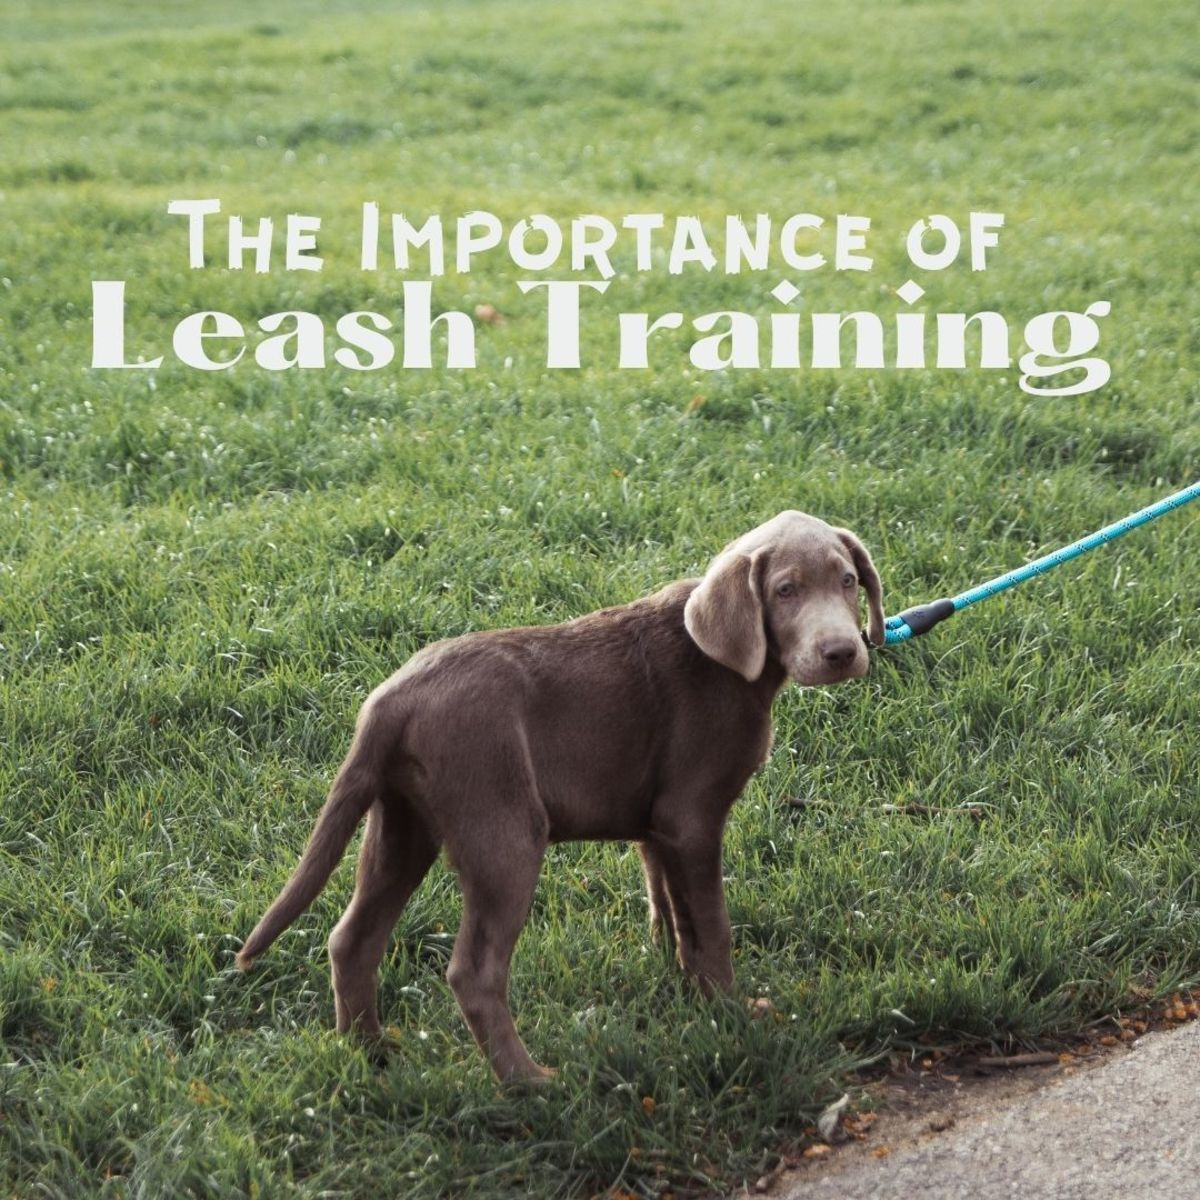 Leash training: why is it important?